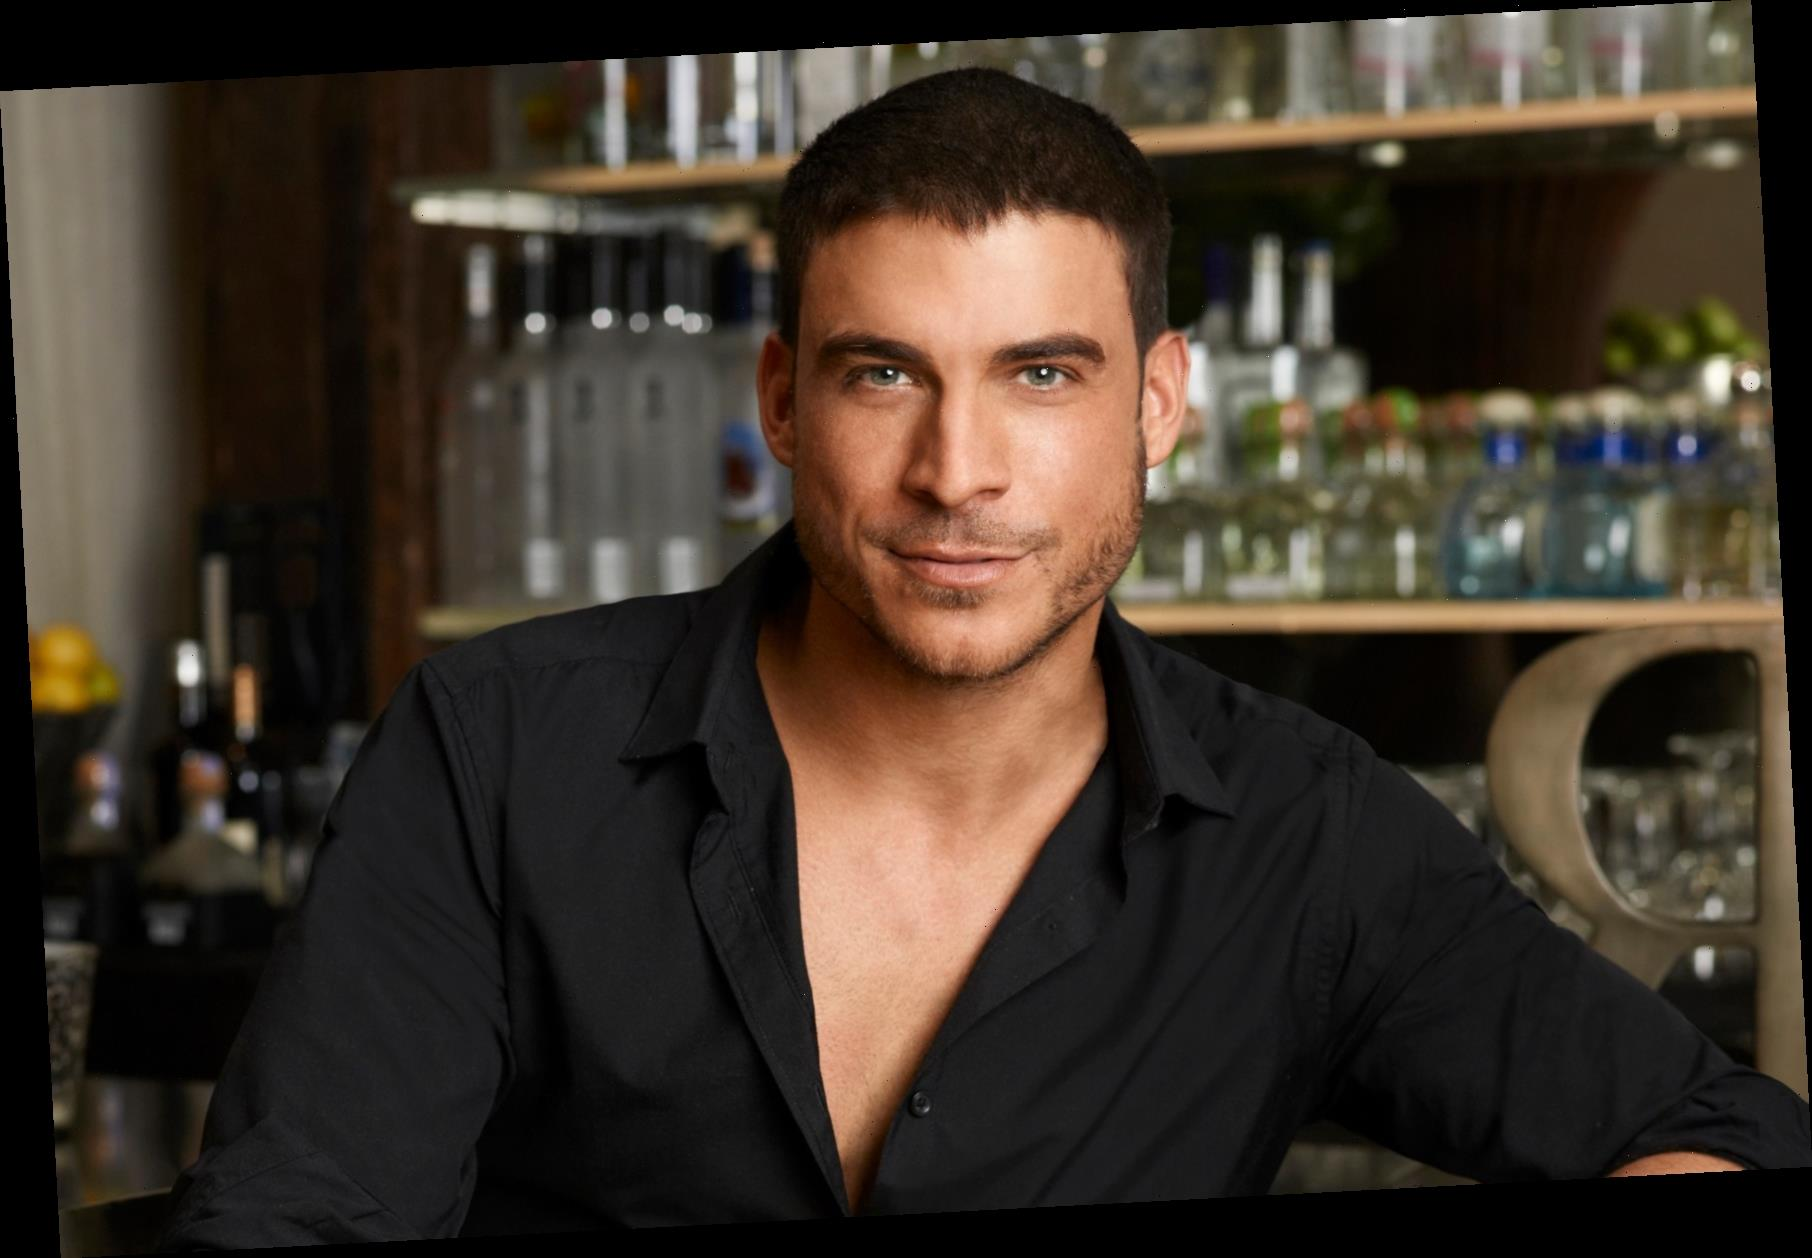 What is Jax Taylor's net worth?